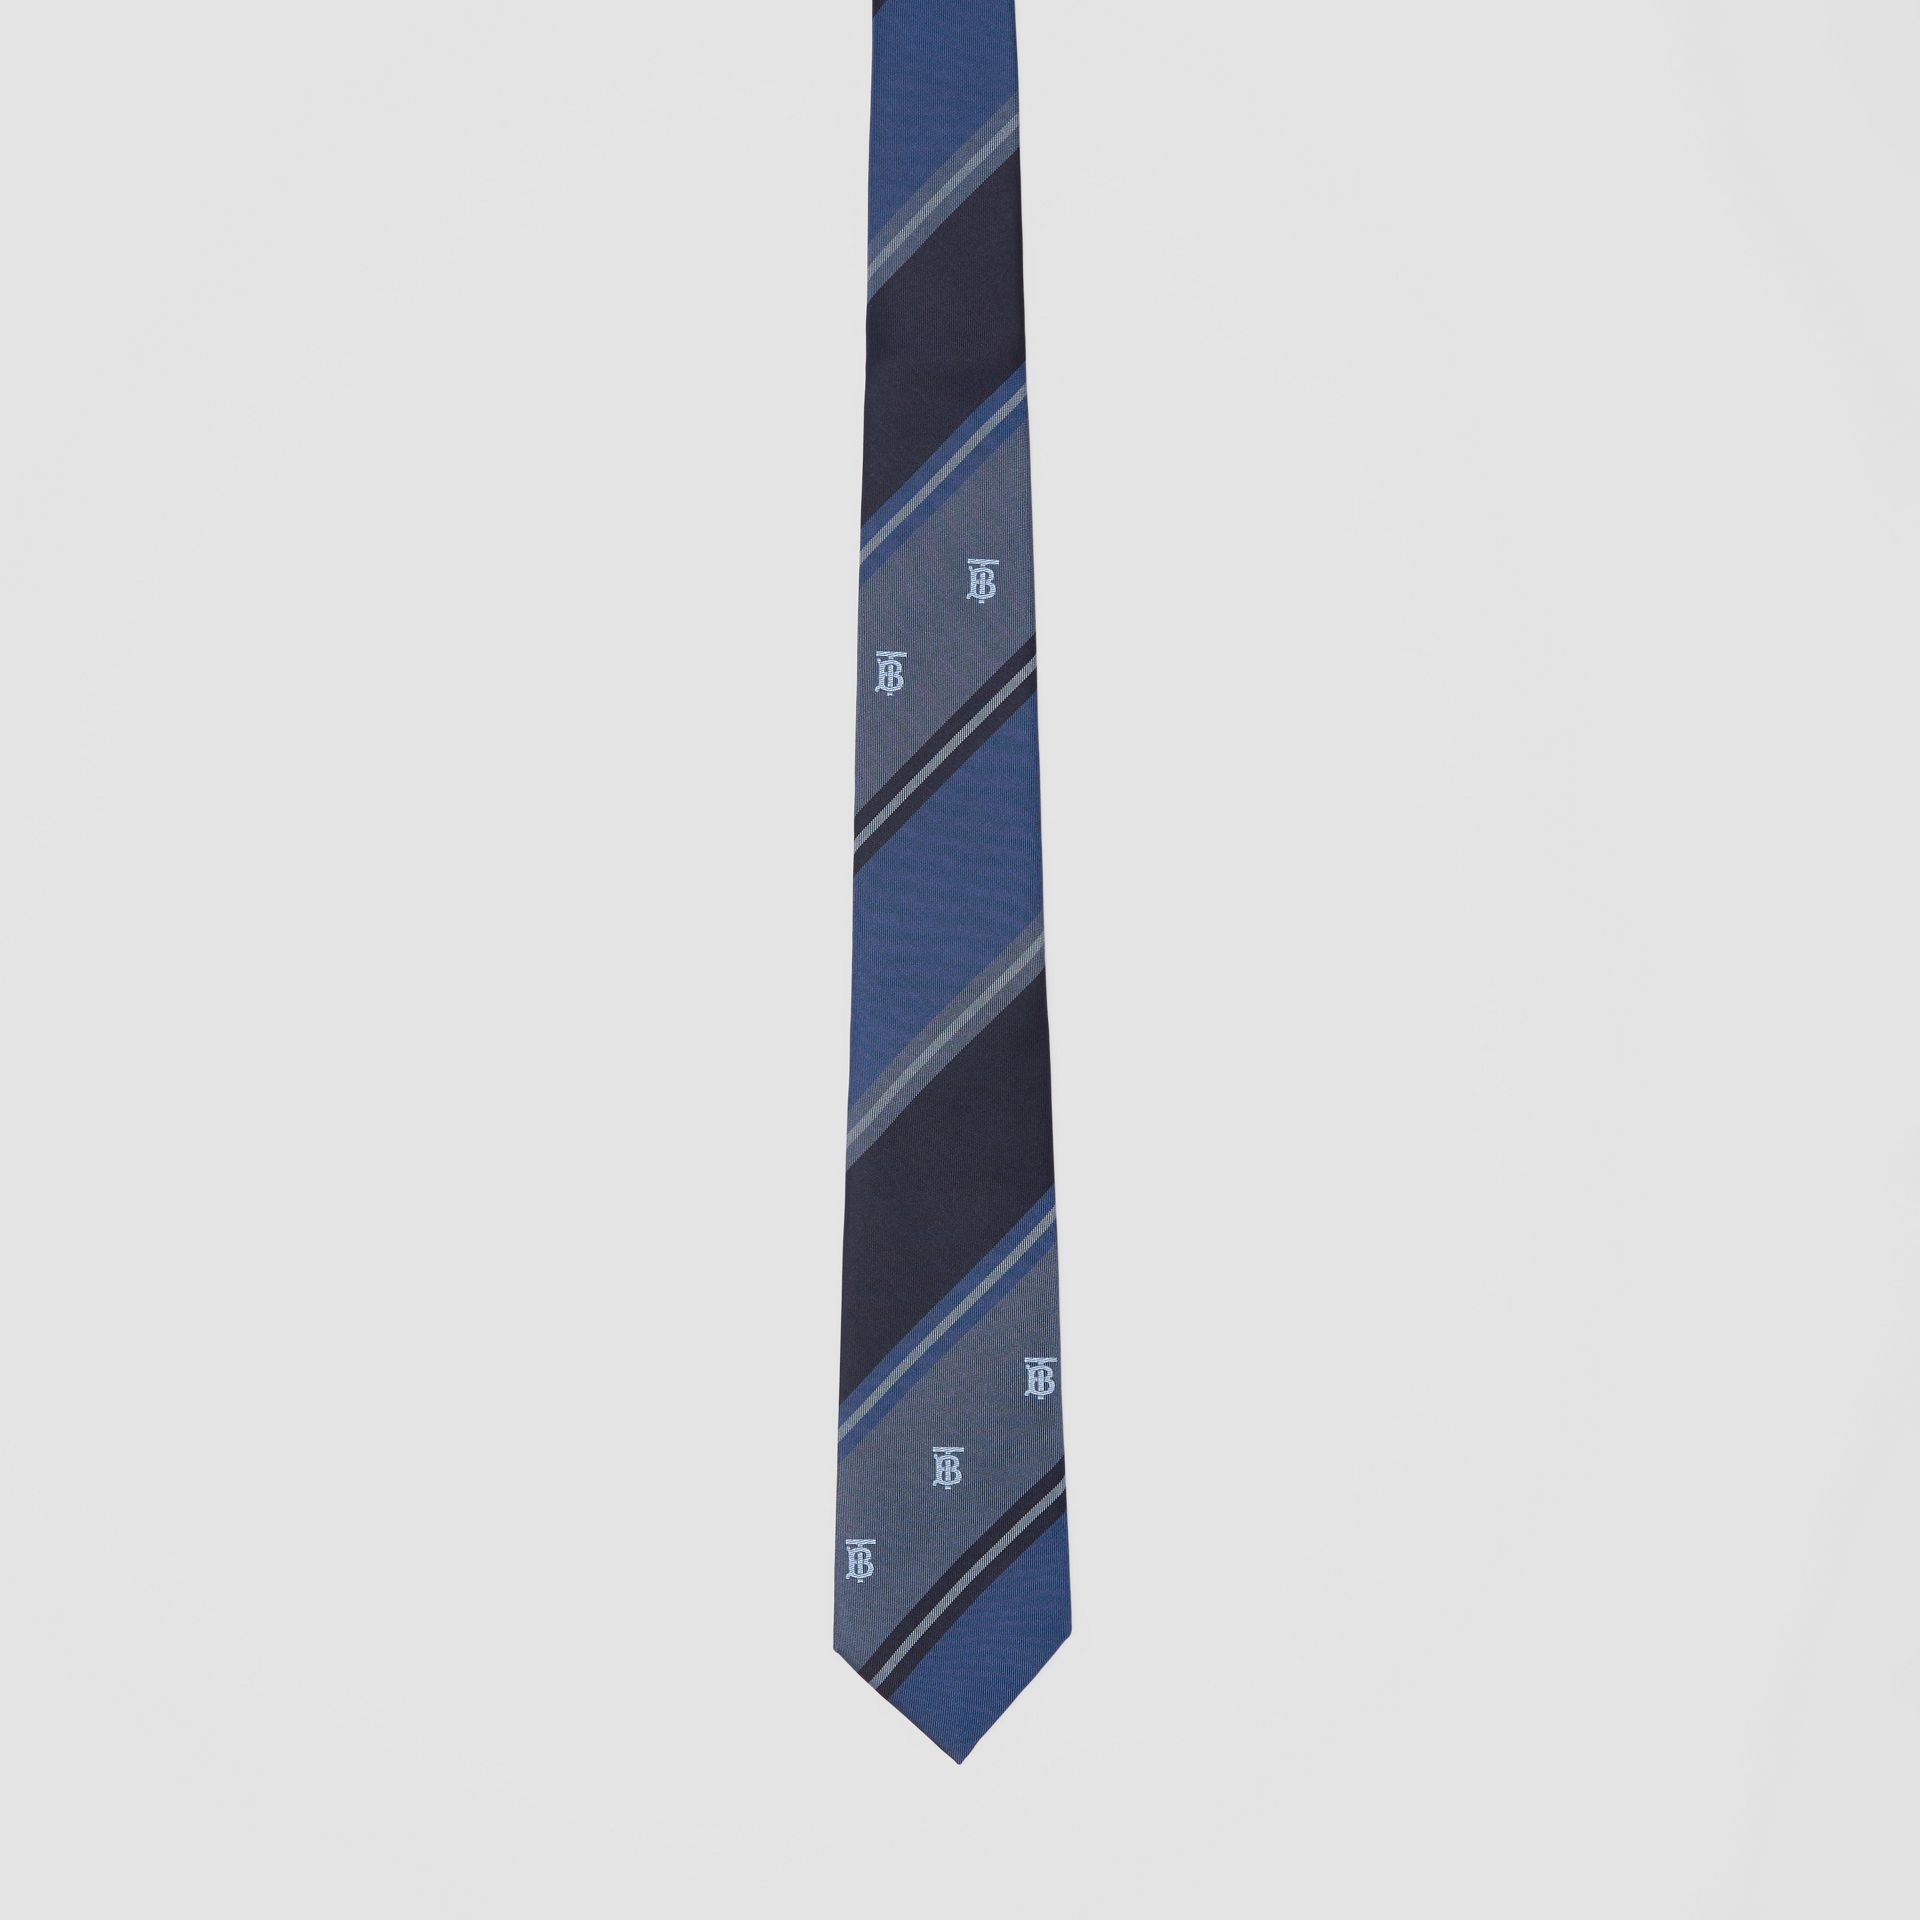 Classic Cut Monogram Motif Striped Silk Jacquard Tie in Bright Steel Blue - Men | Burberry - gallery image 3